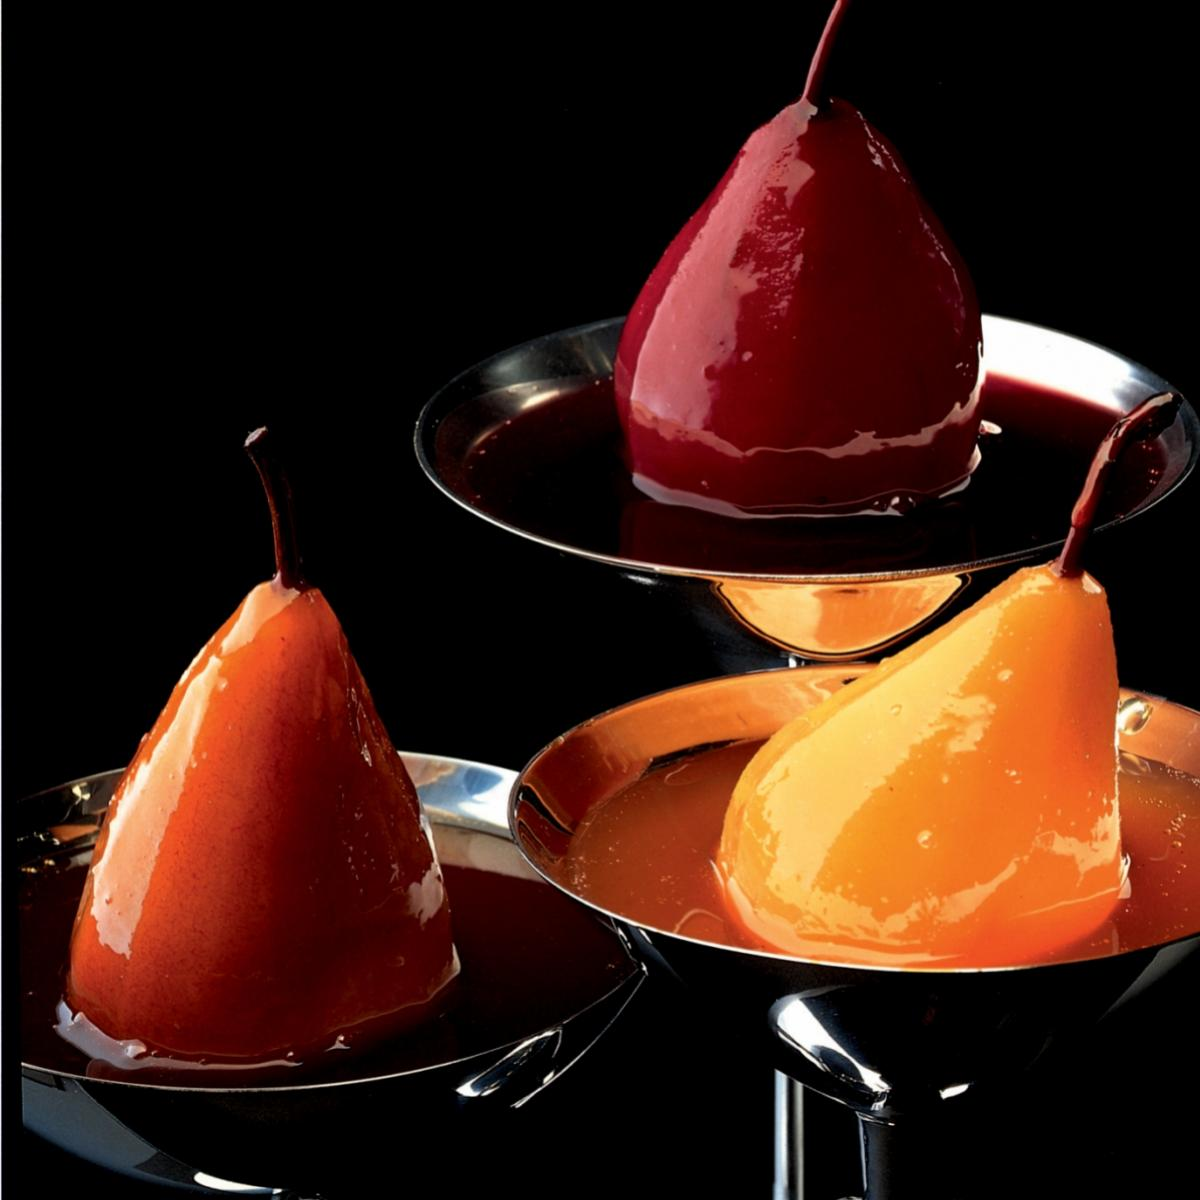 Winter pears baked in marsala wine